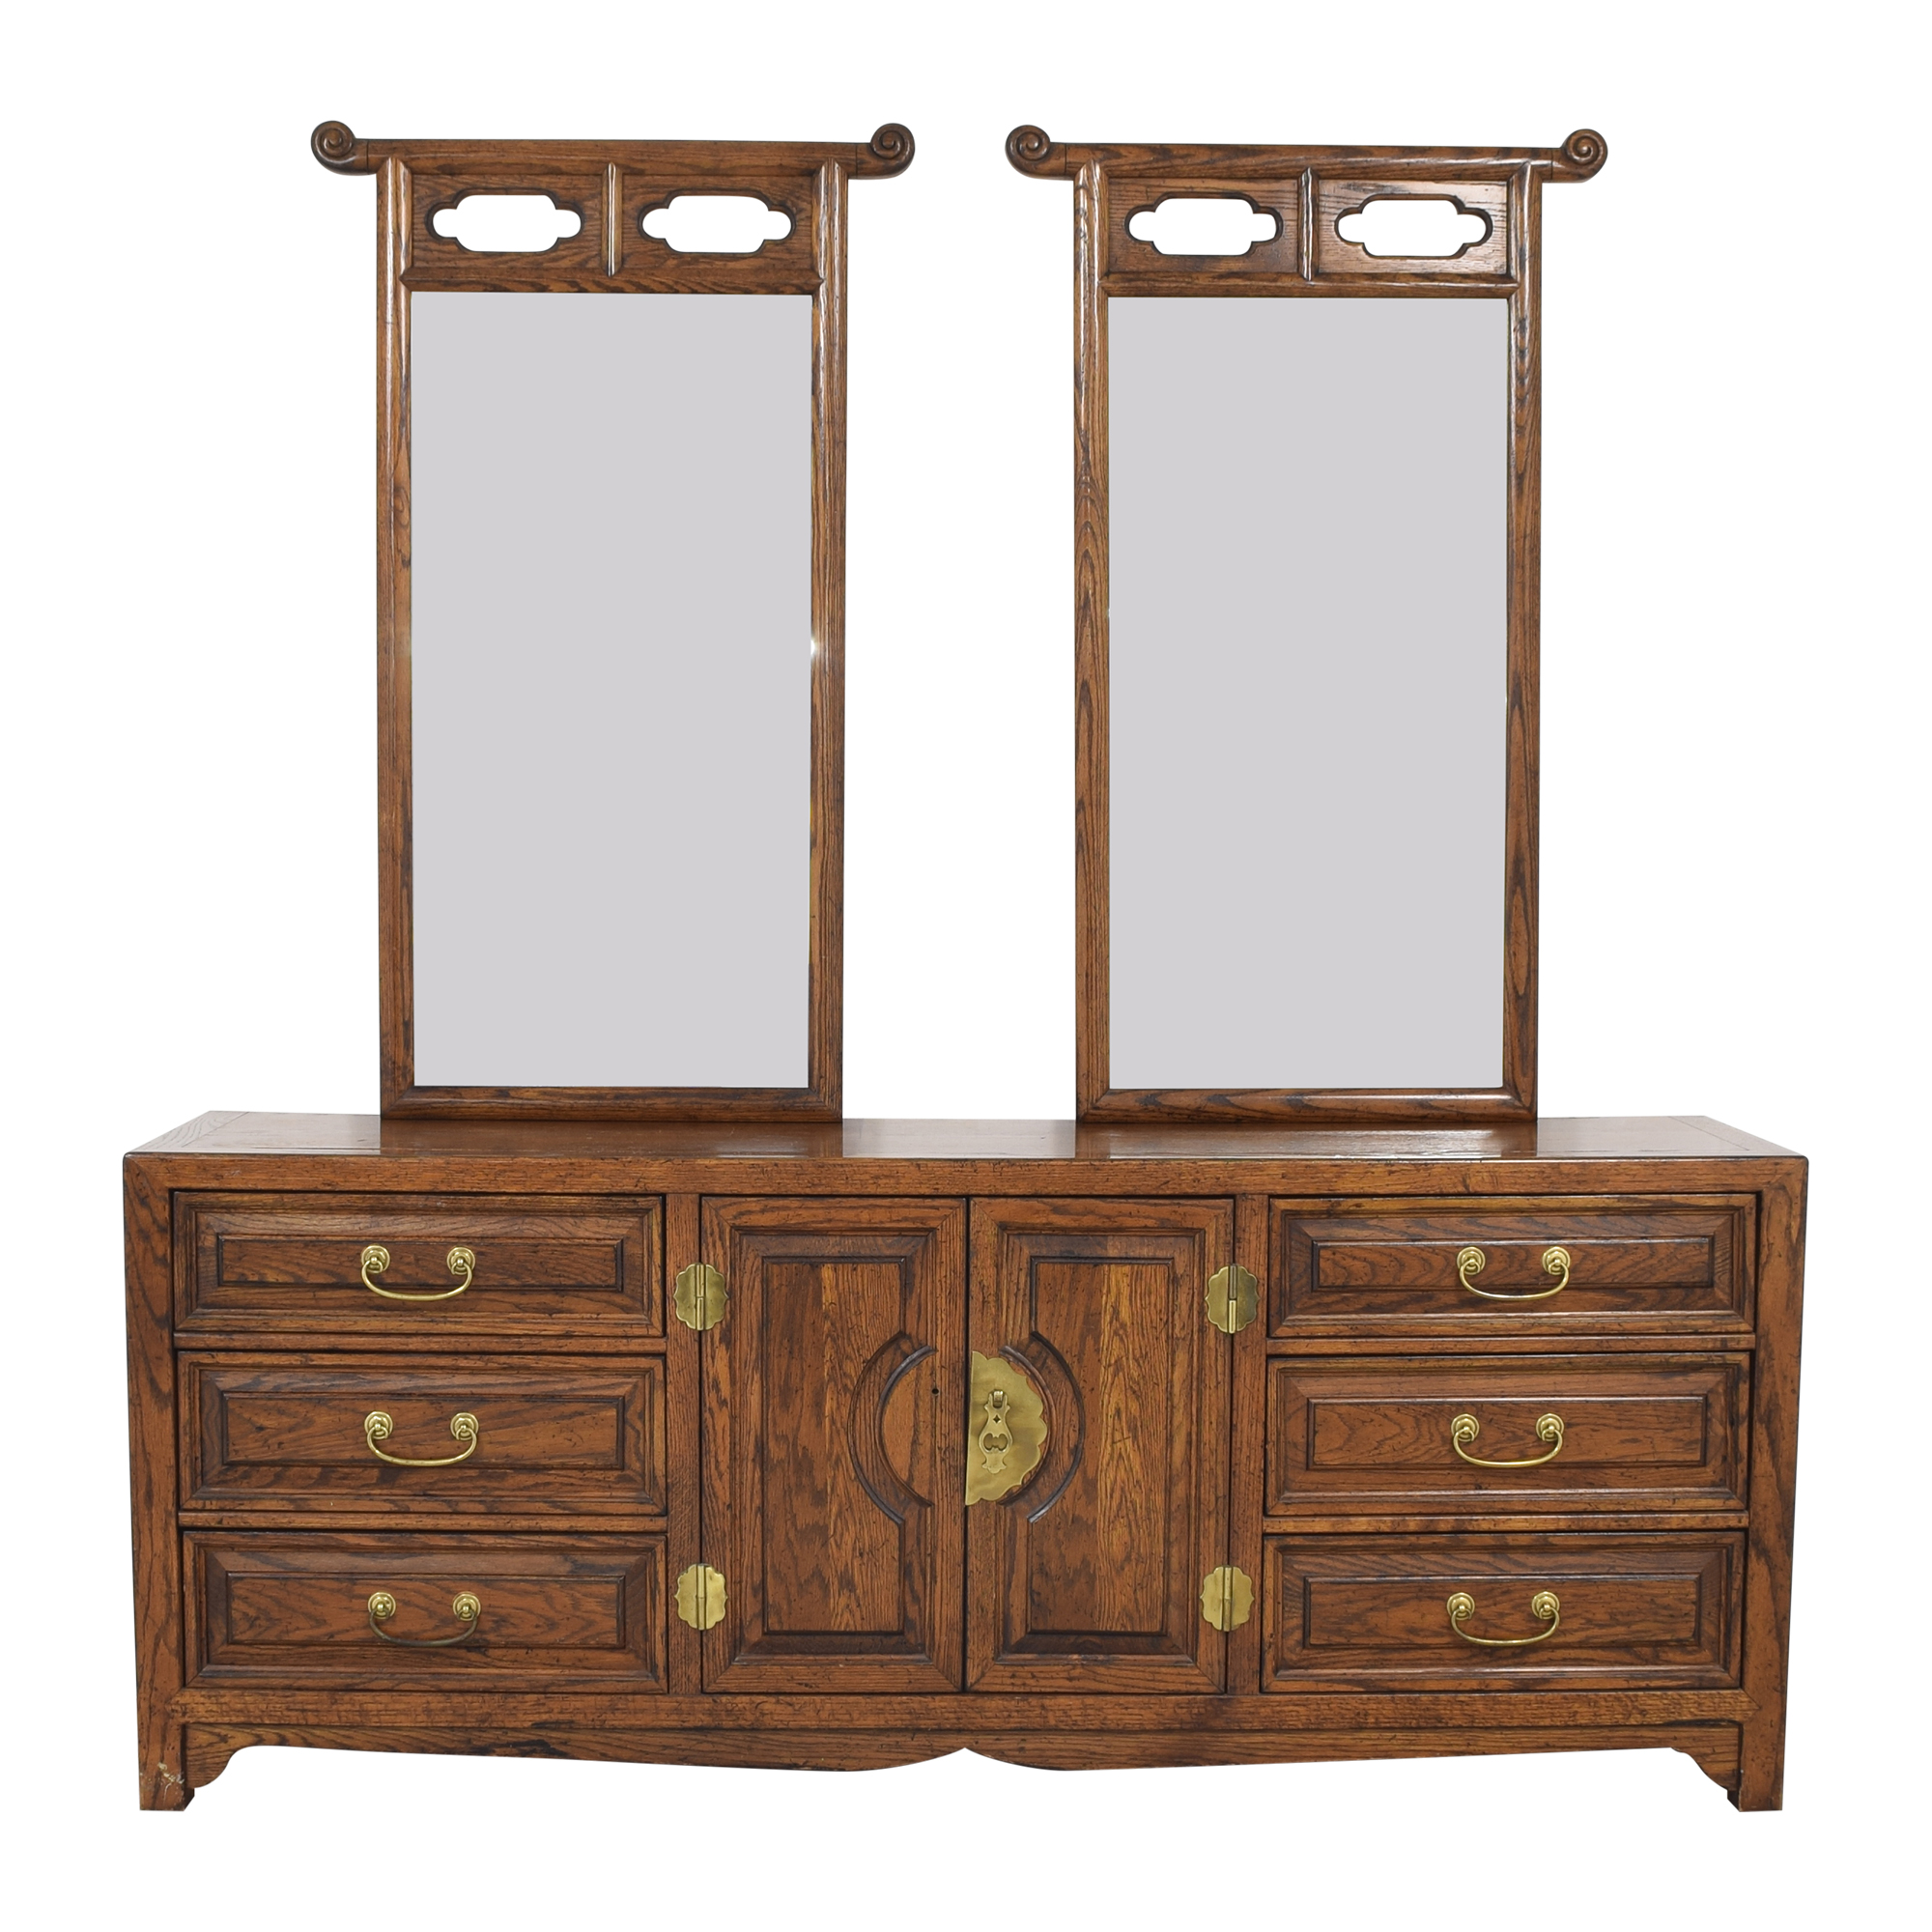 Century Furniture Century Furniture Nine Drawer Double Mirror Dresser second hand